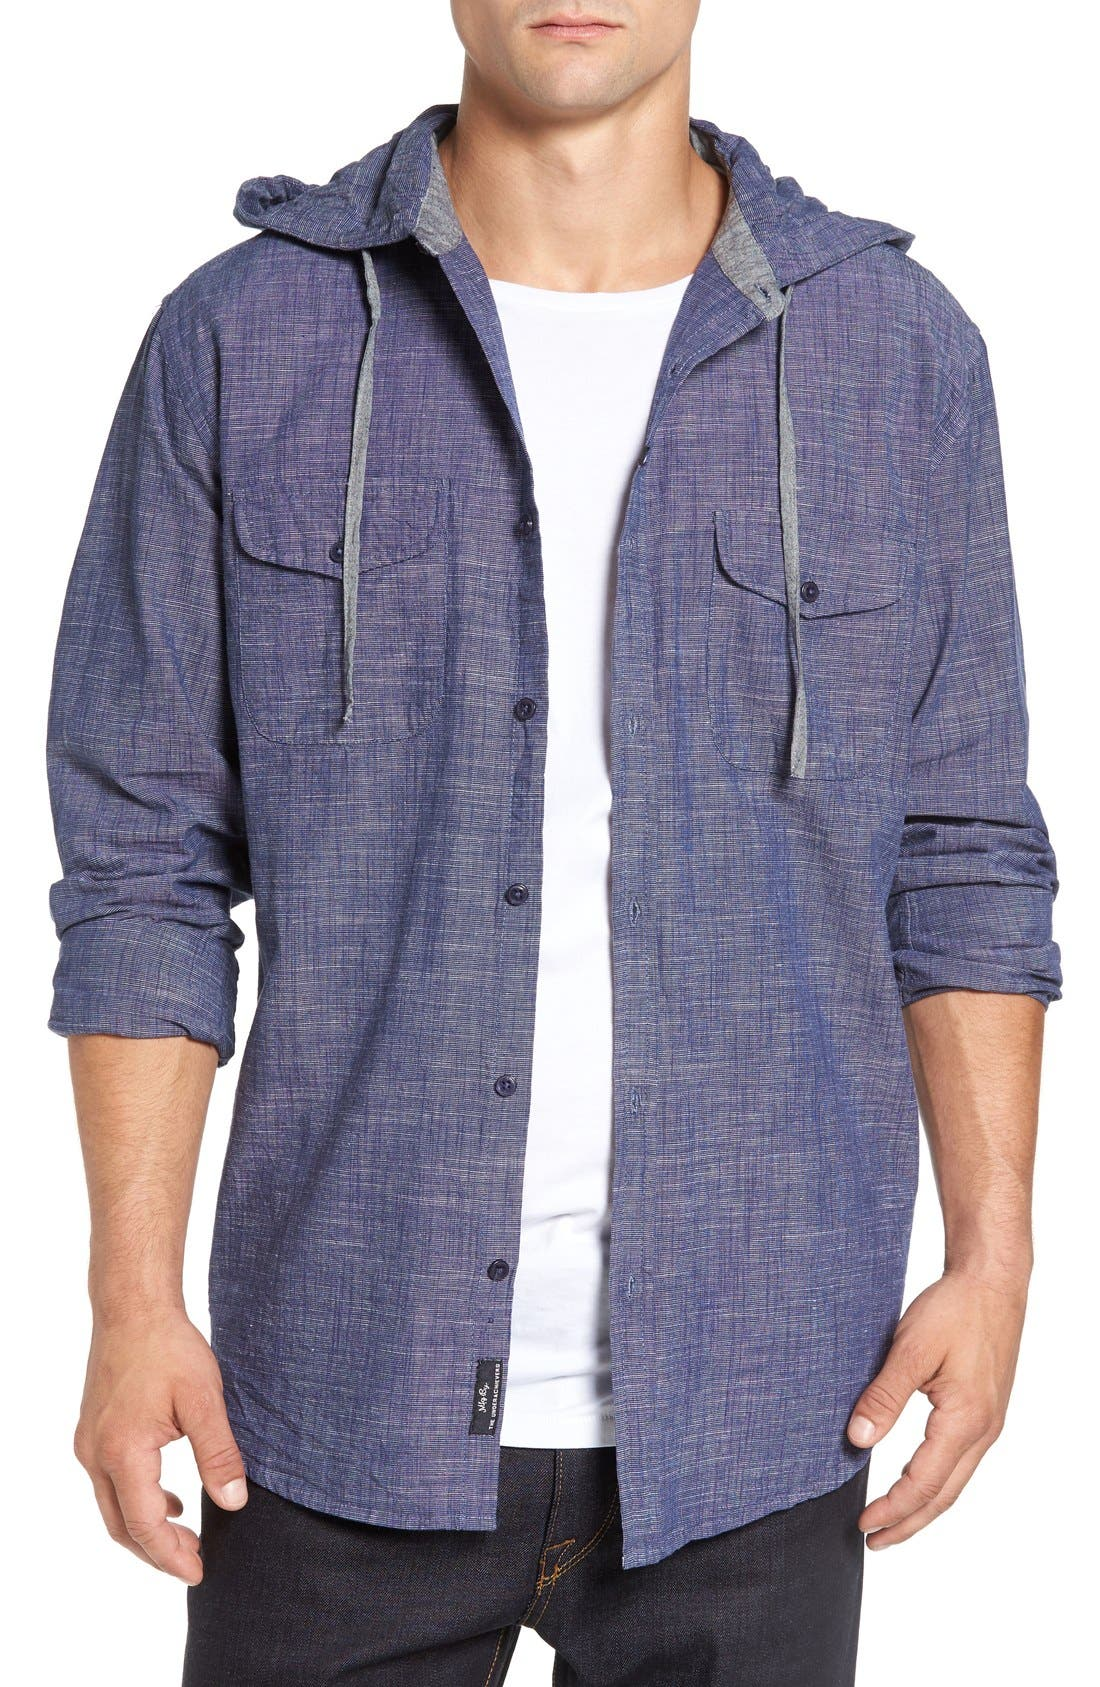 Imperial Motion 'Oslo' Hooded Woven Shirt